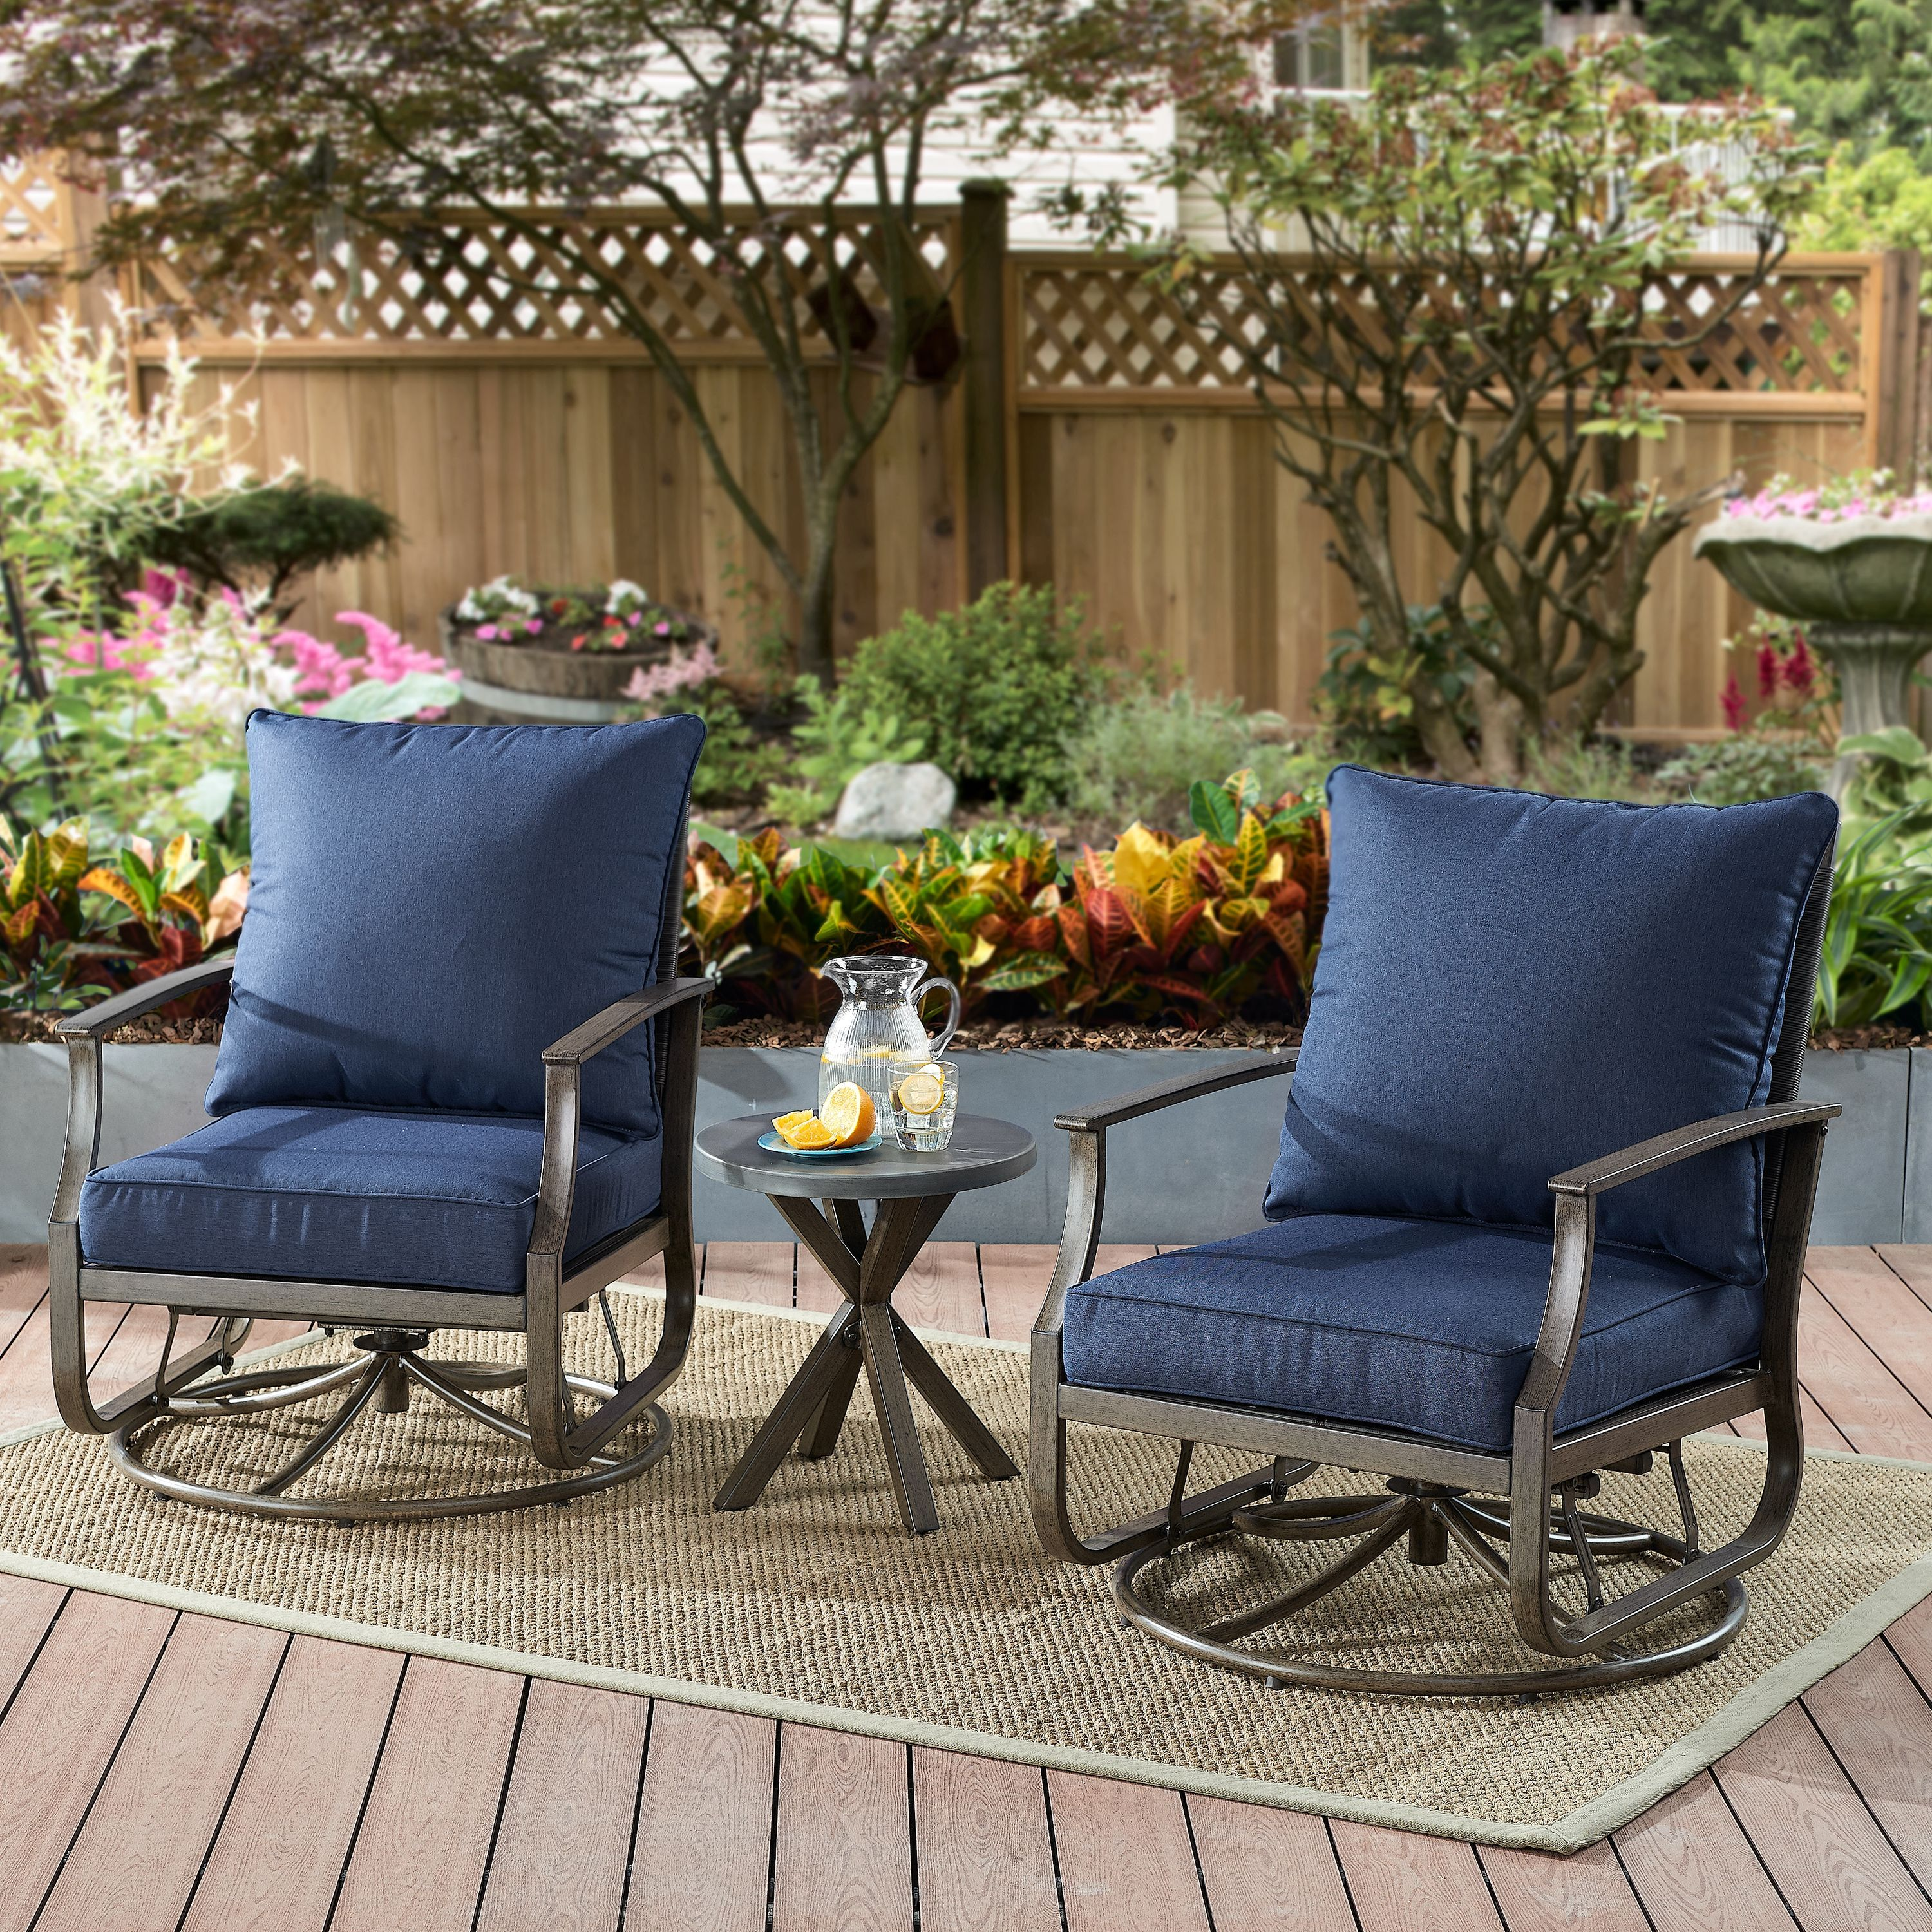 Better Homes Gardens Chauncey 3 Piece Patio Chat Set With Navy Cushions Walmart Com In 2020 Patio Furniture Sets Patio Set Better Homes Gardens